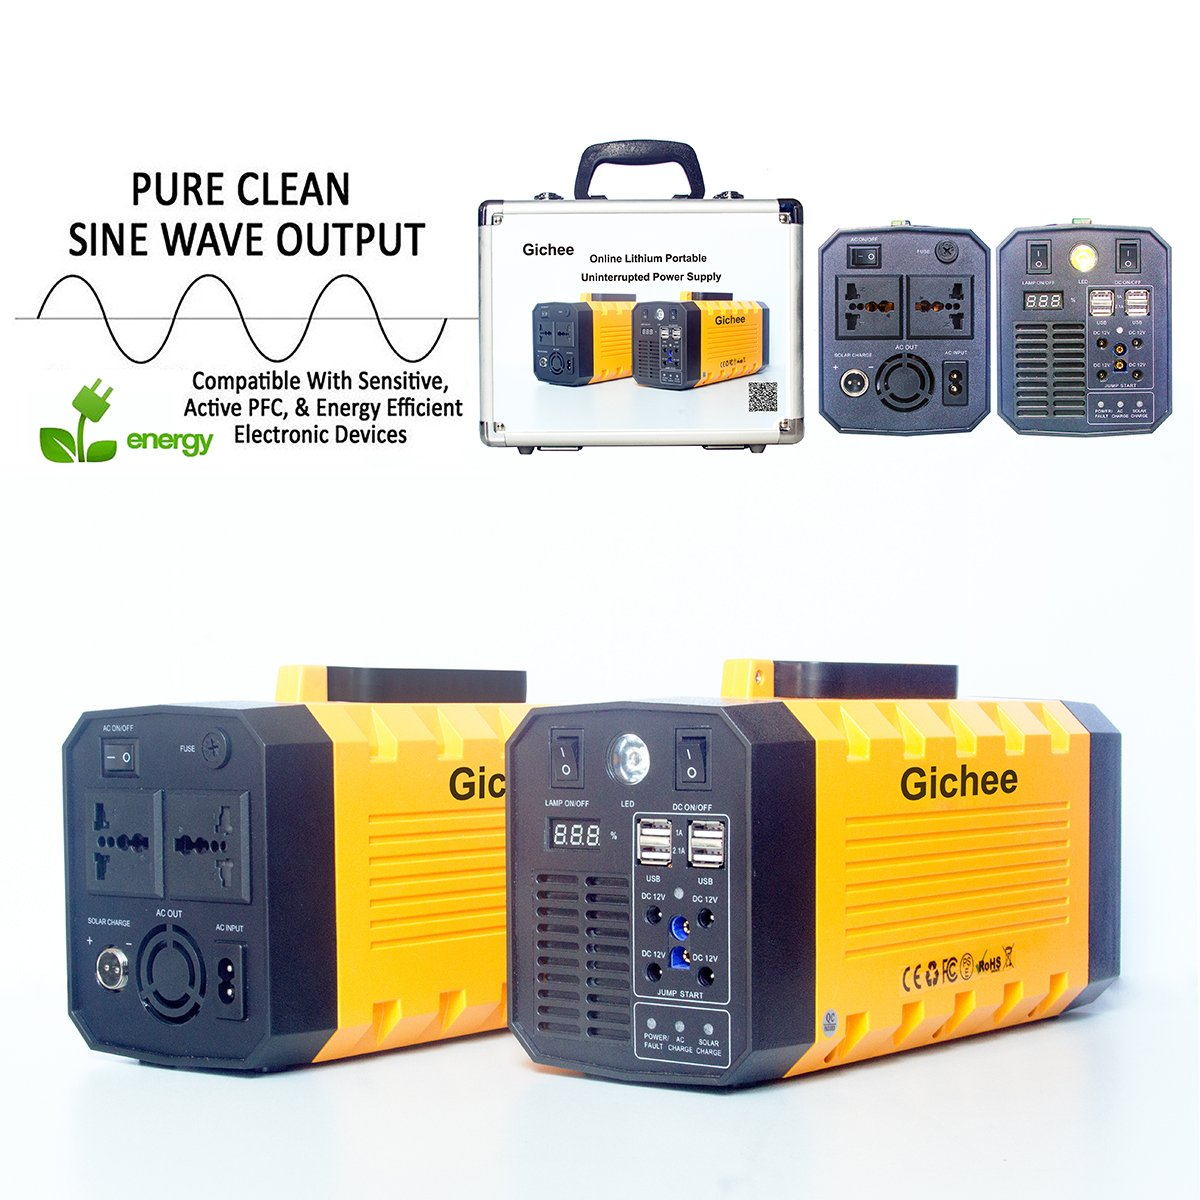 Gichee Portable UPS On-line Uninterrupted Power Supply Pure Sine Wave Power Inverter 500W (Peak 1000W) 288WH Lithium Backup Battery Solar Generator with Car Jump Starter USB DC AC Outlet